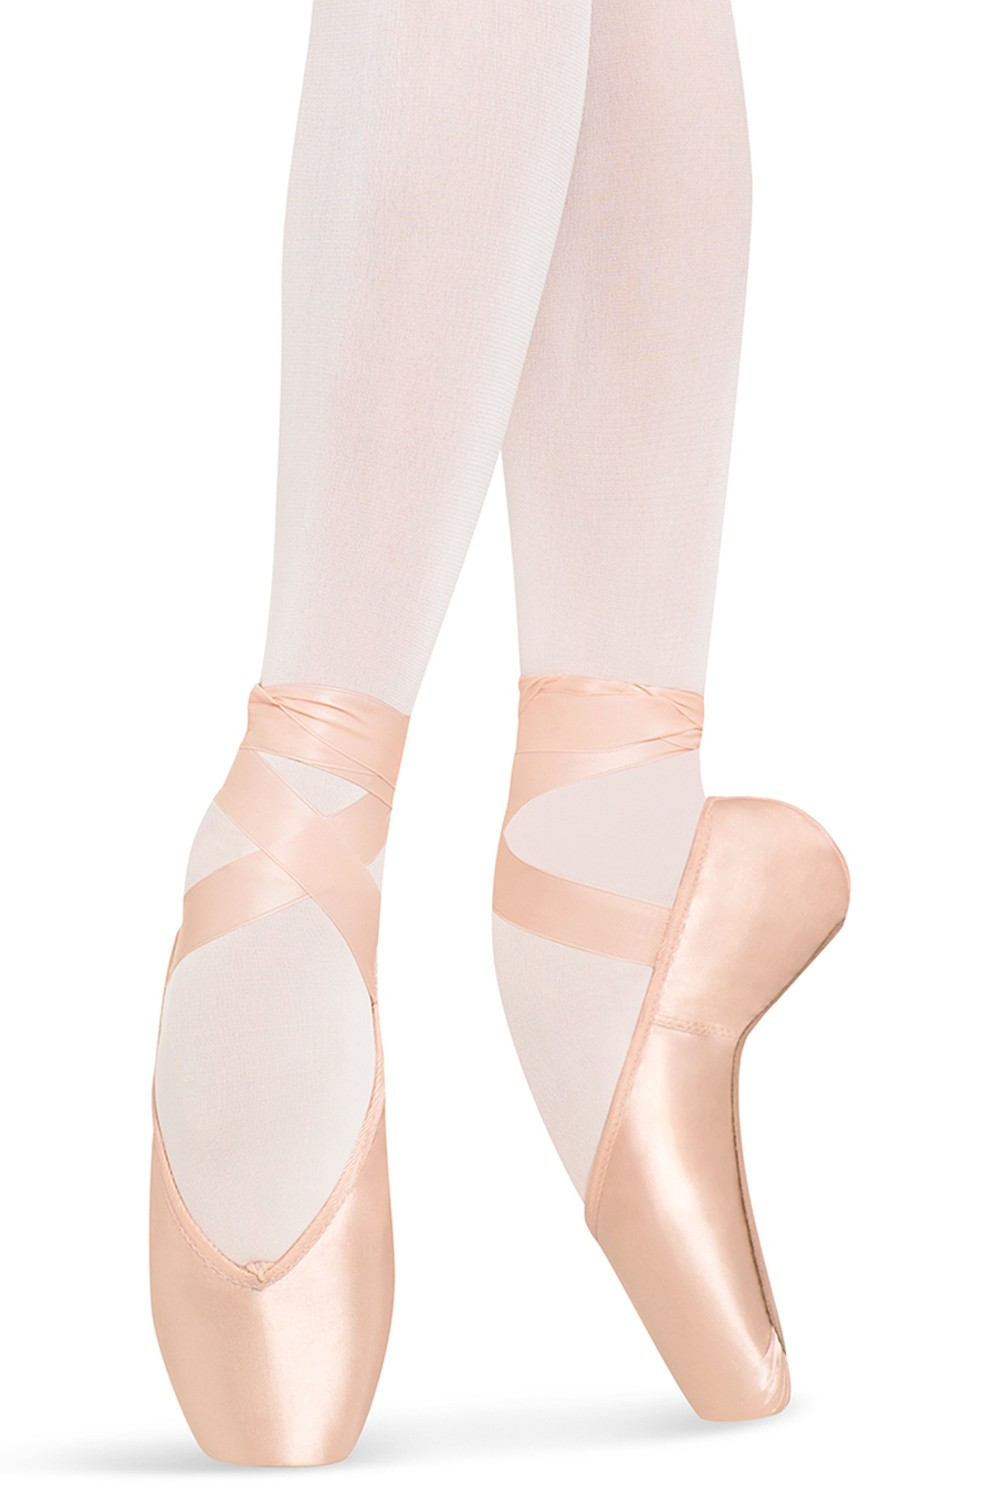 Heritage Strong Longer Length Pointe Shoes